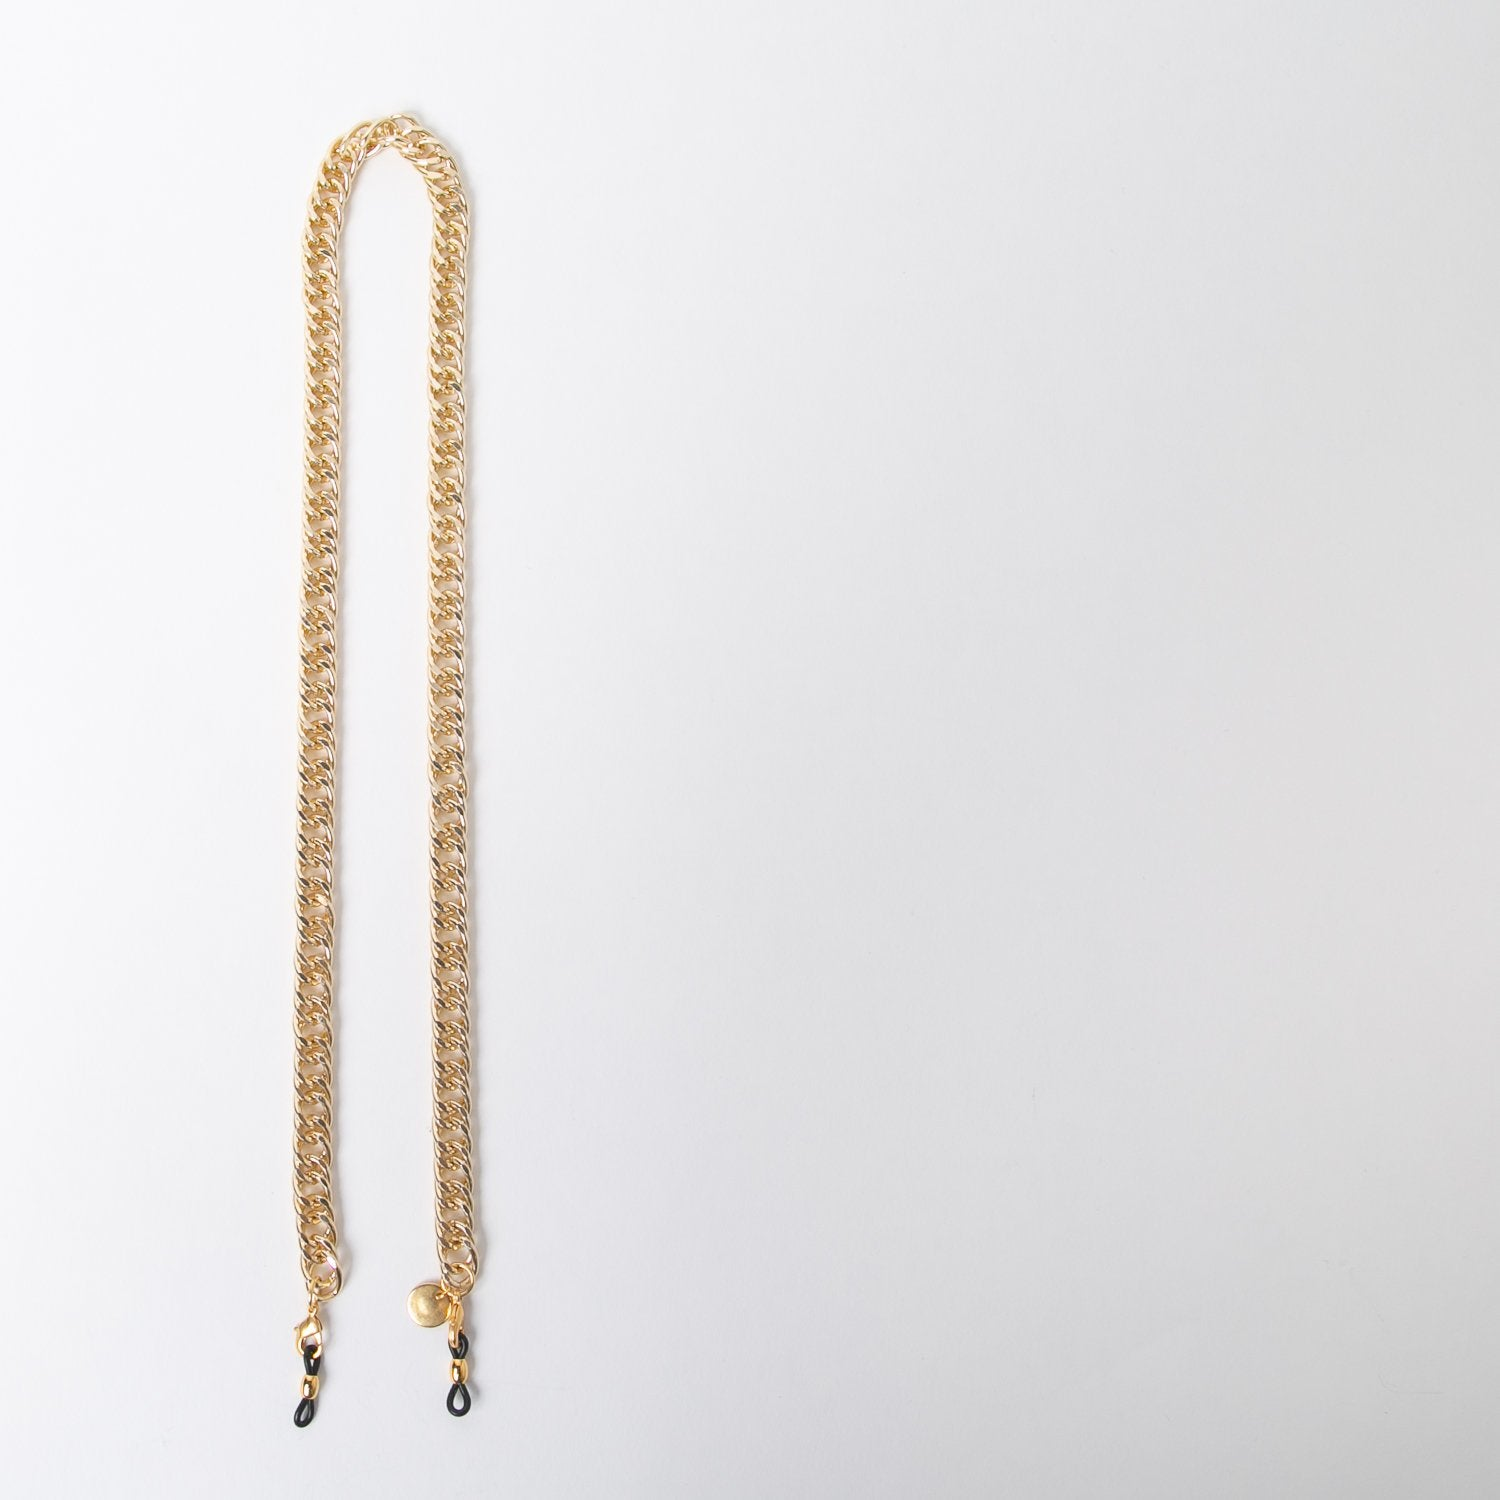 eyewear accessory in thick gold chain by SpecSet at Secret Location